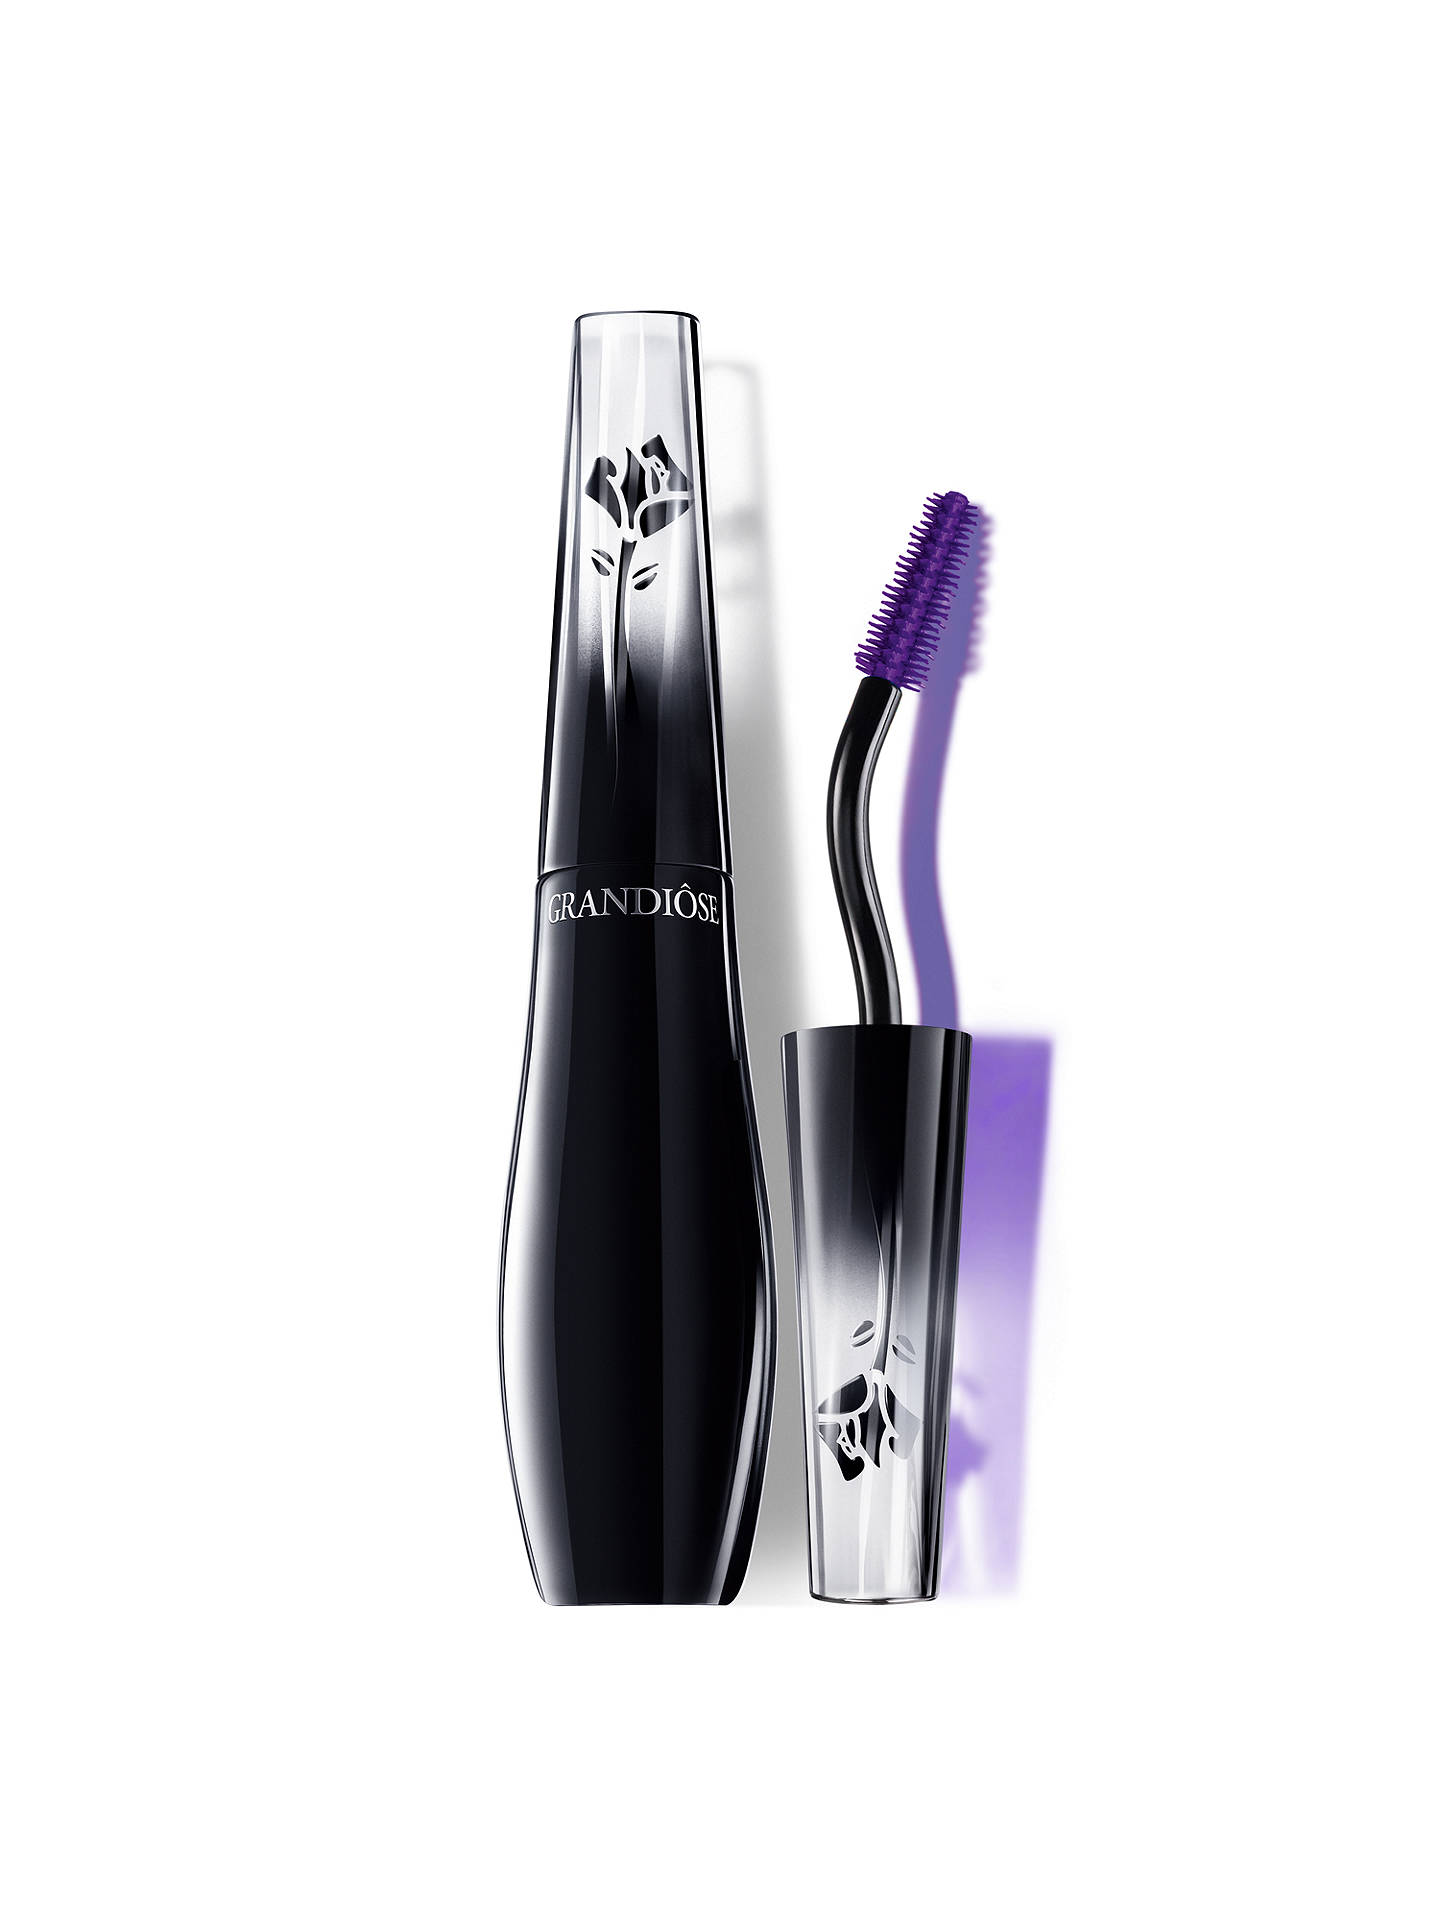 Buy Lancôme Grandiose Mascara, 05, Violet Online at johnlewis.com